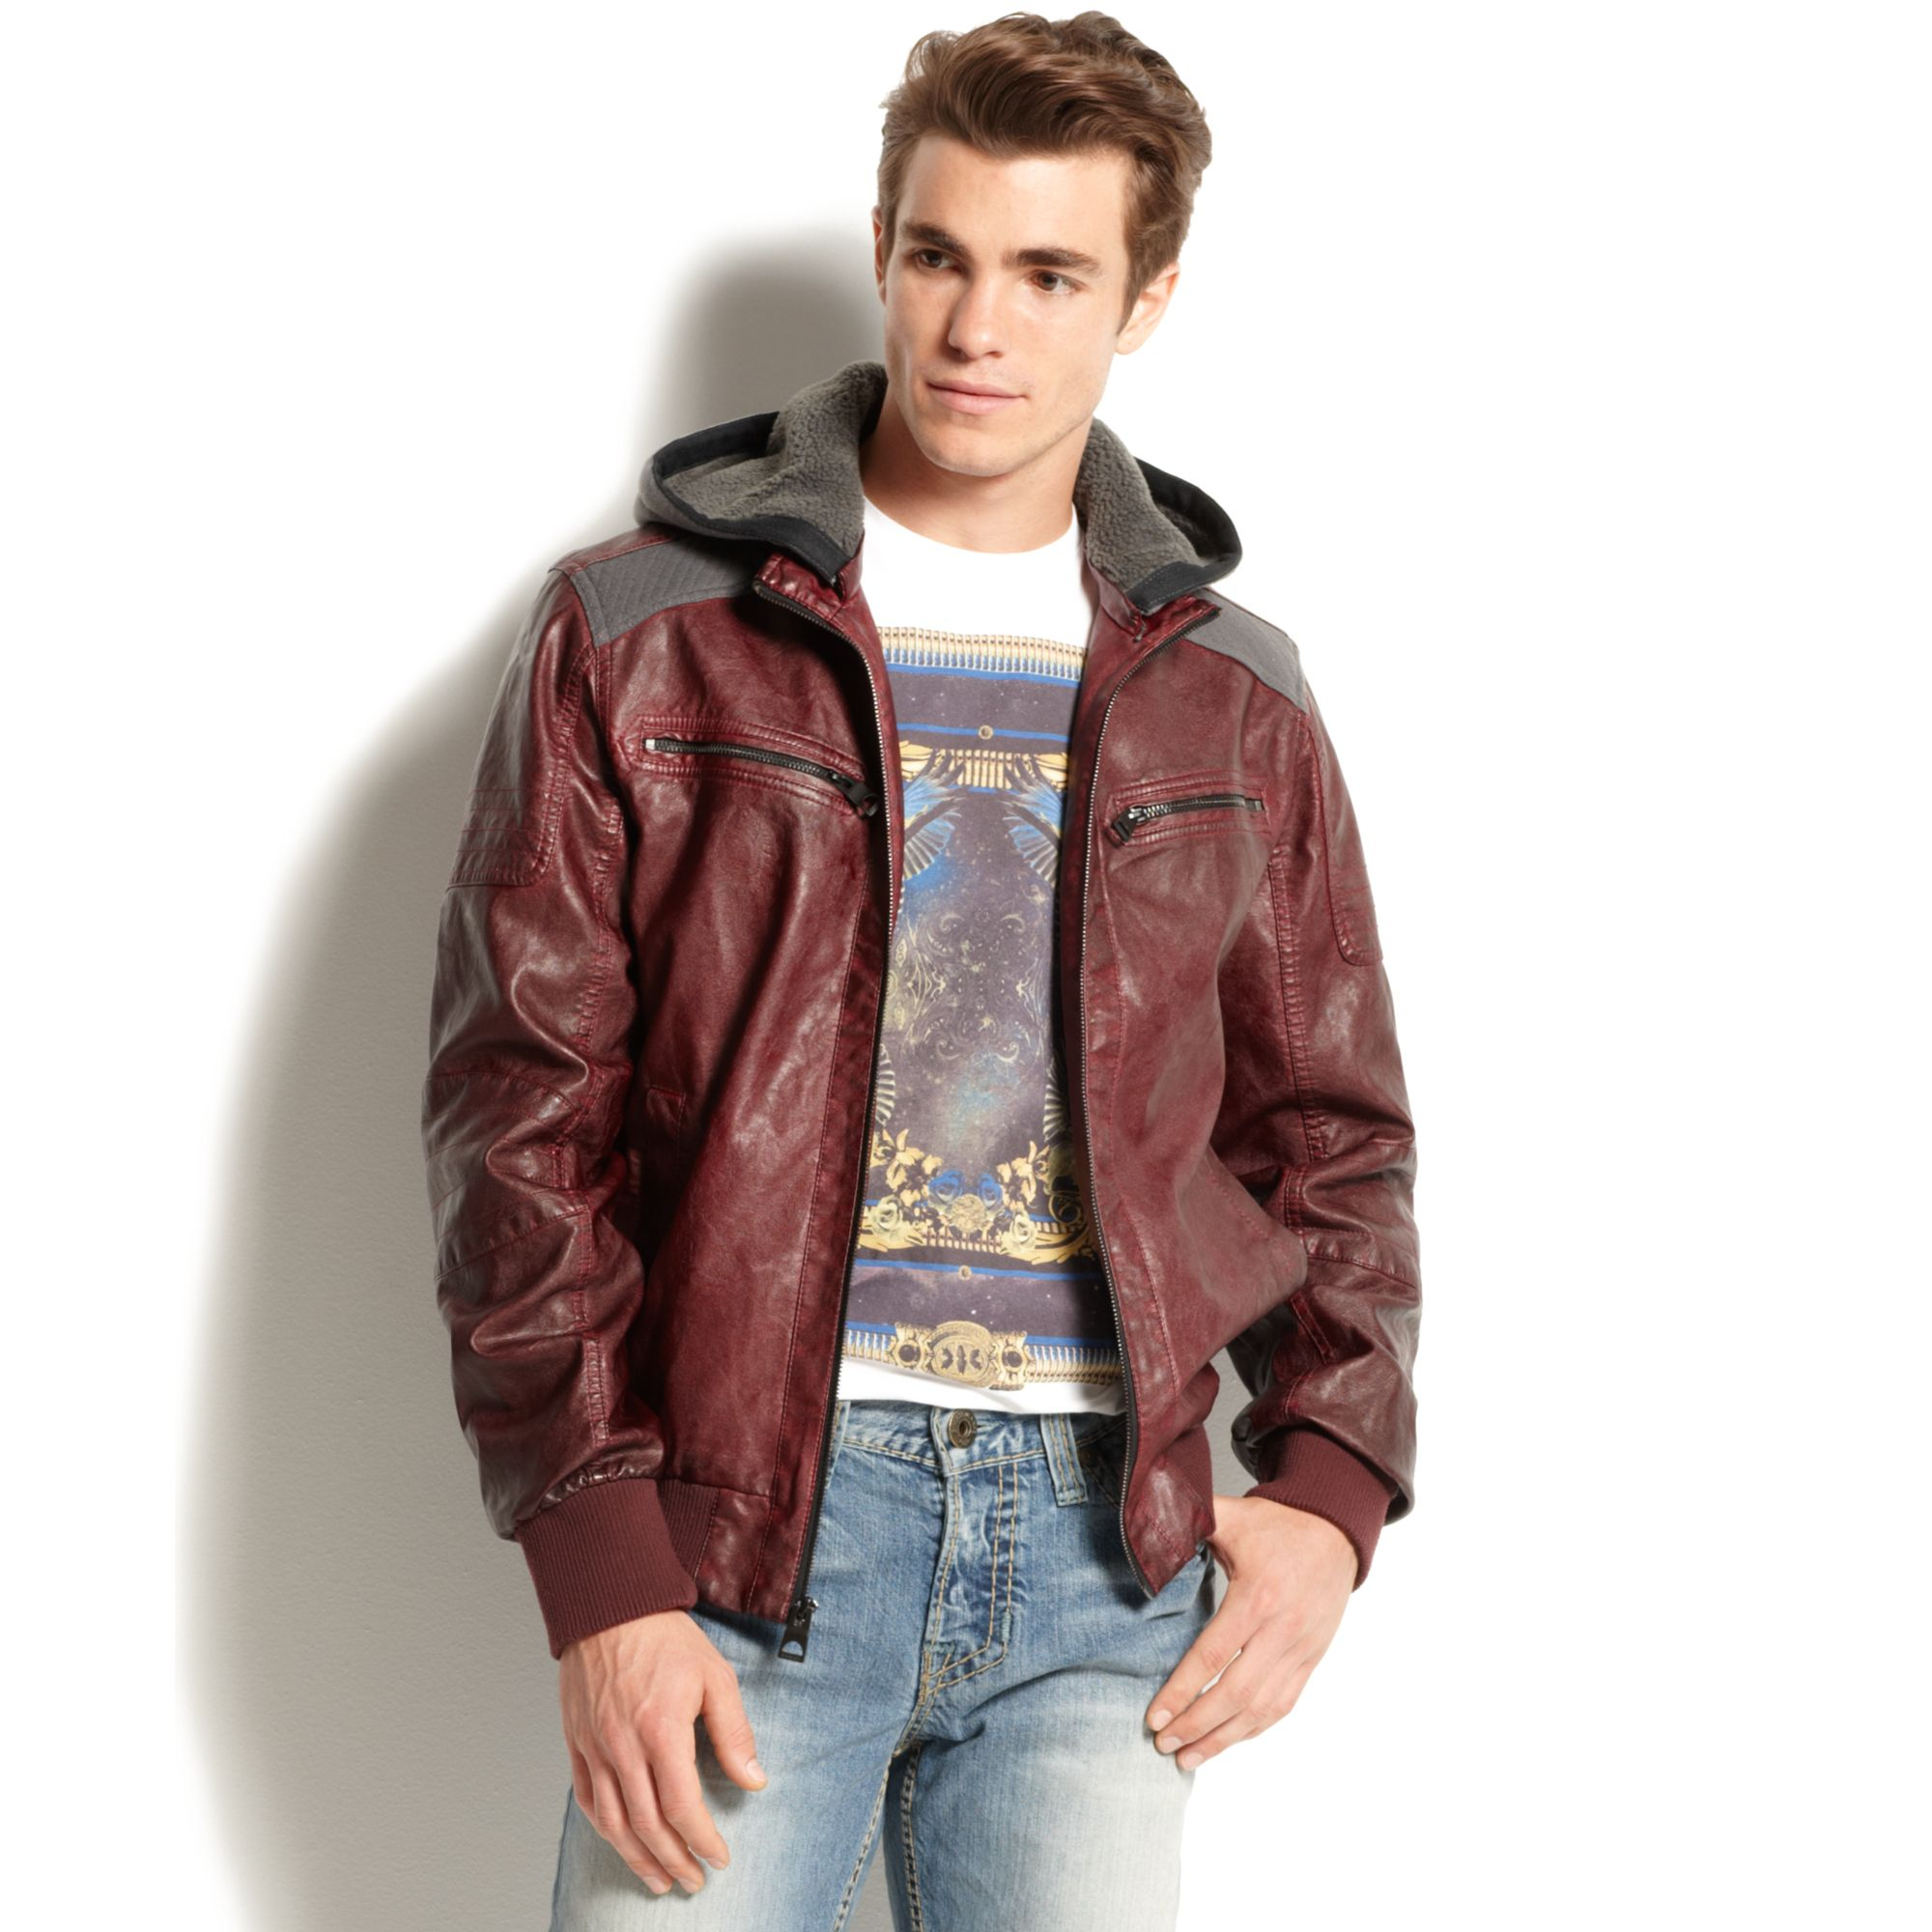 33467d4d1b859 Lyst - Guess Hooded Faux Leather Bomber Jacket in Red for Men